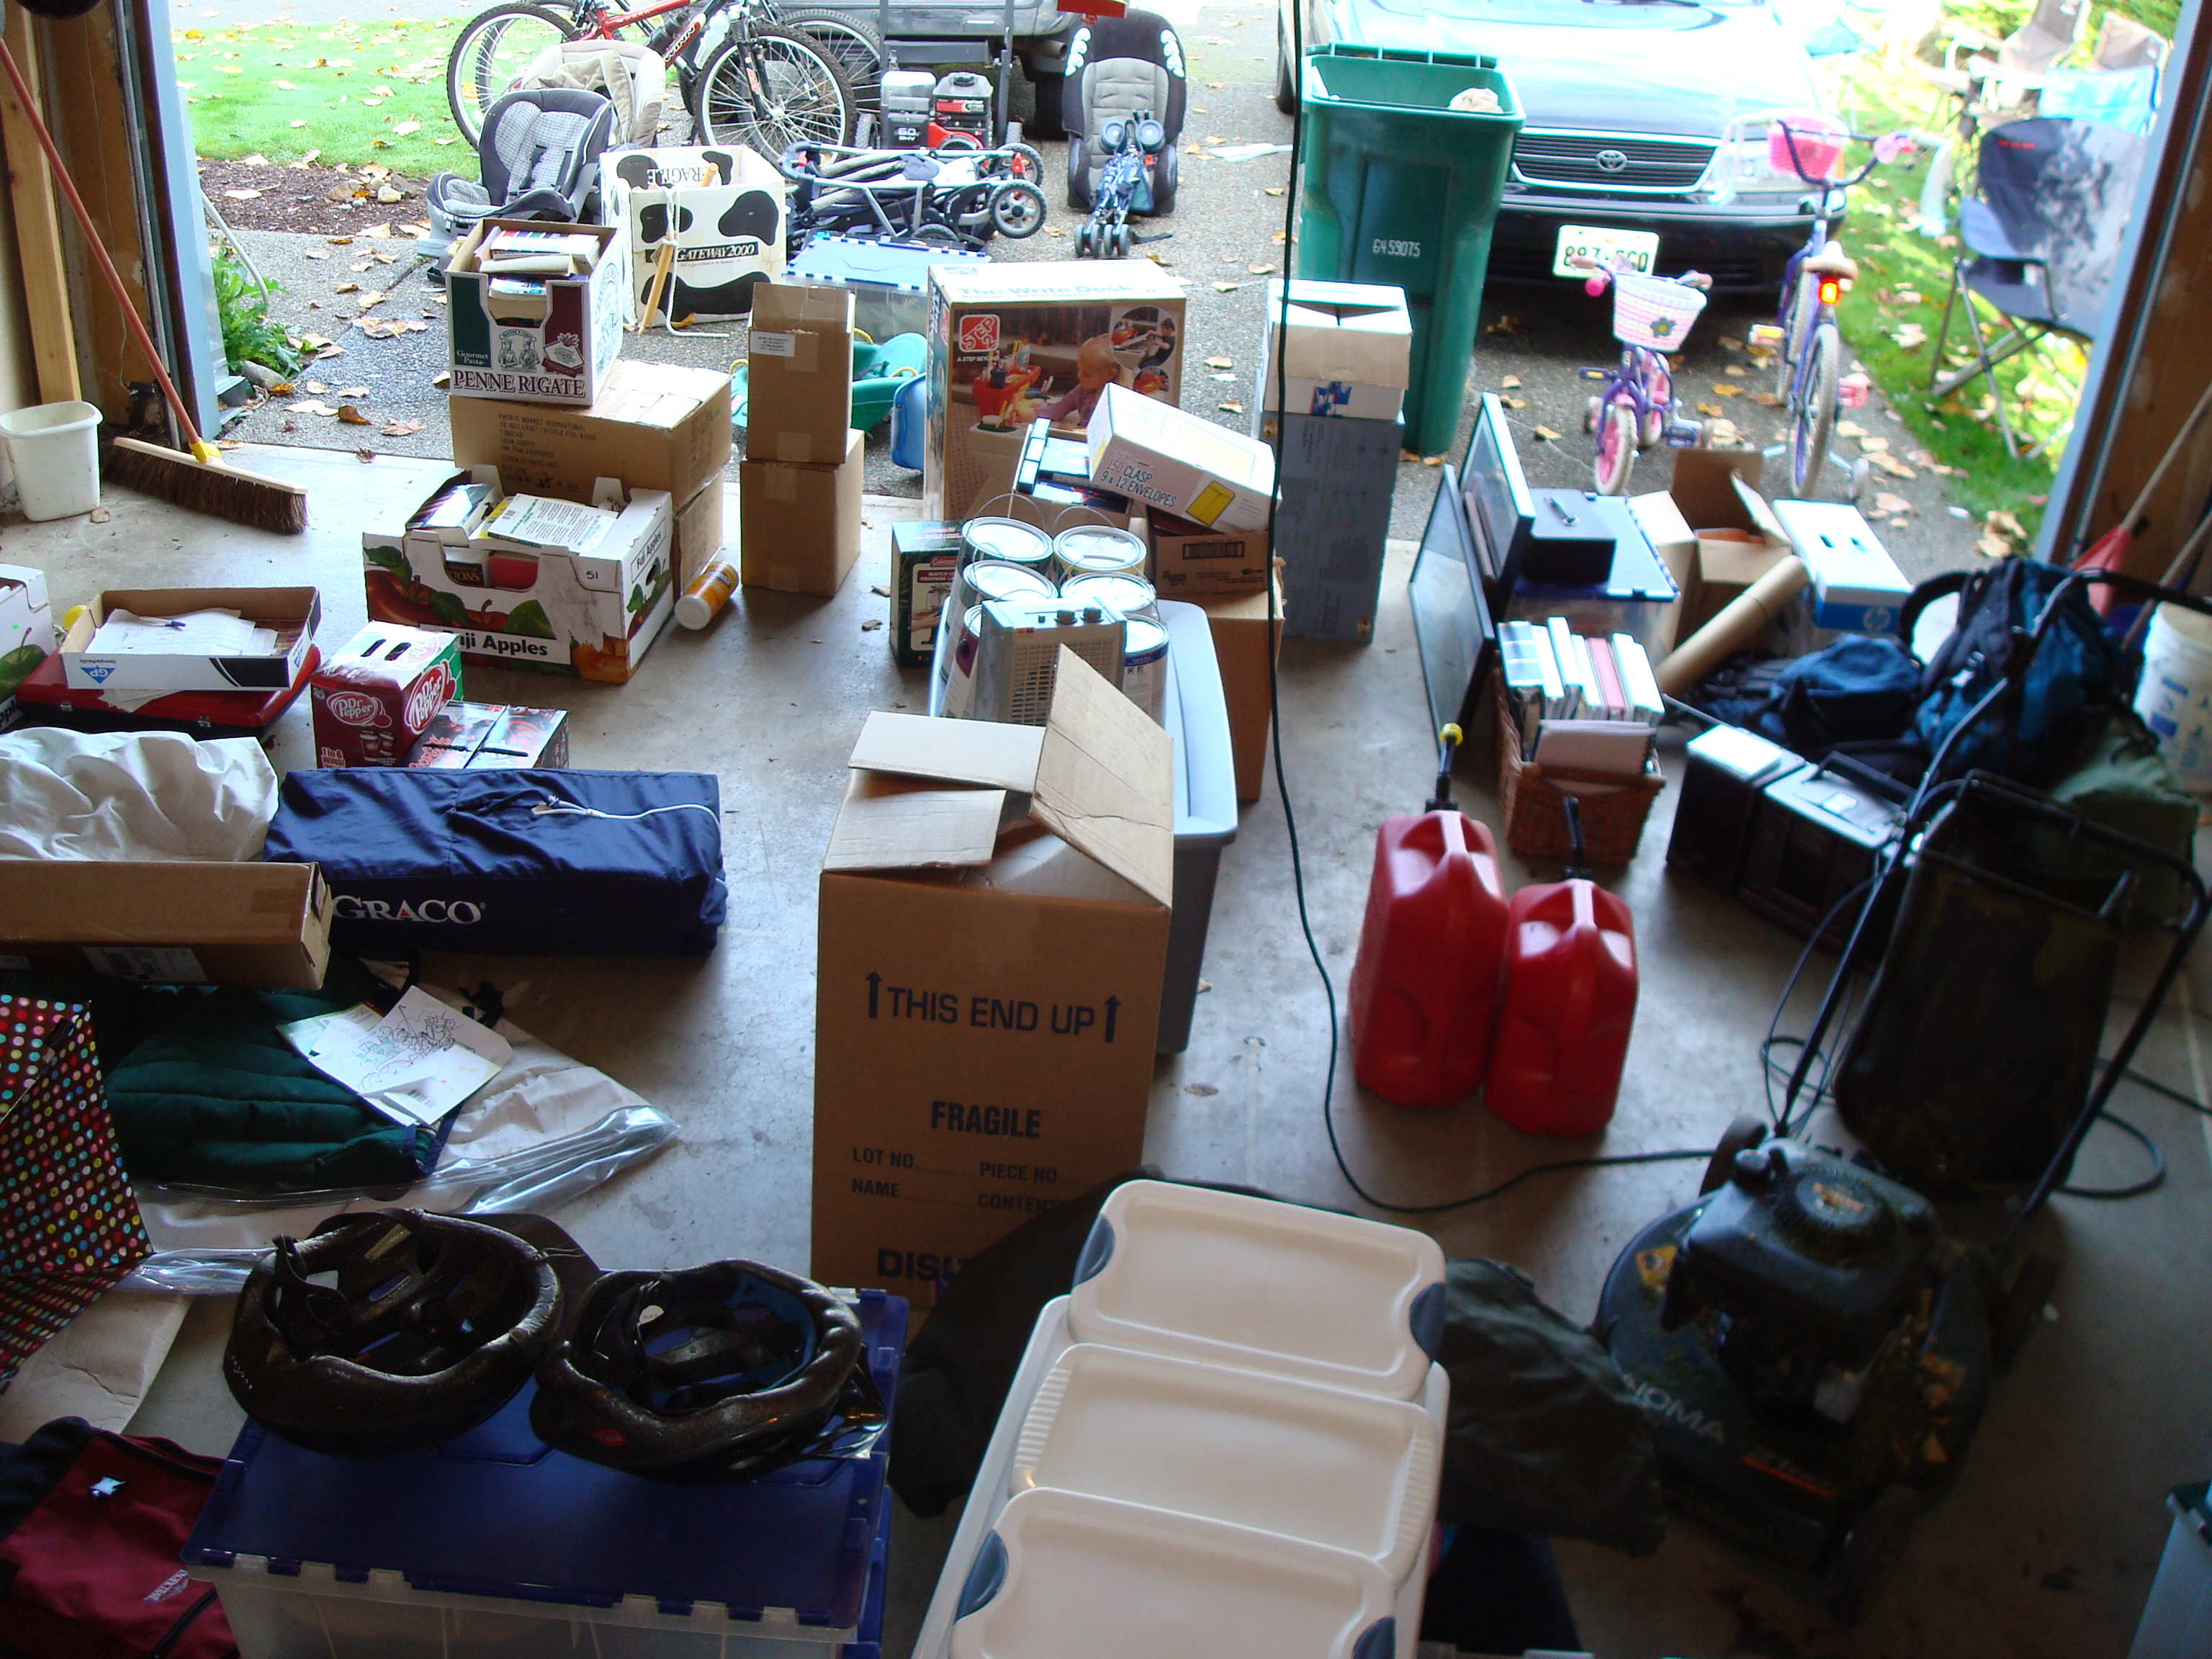 during the reorganization